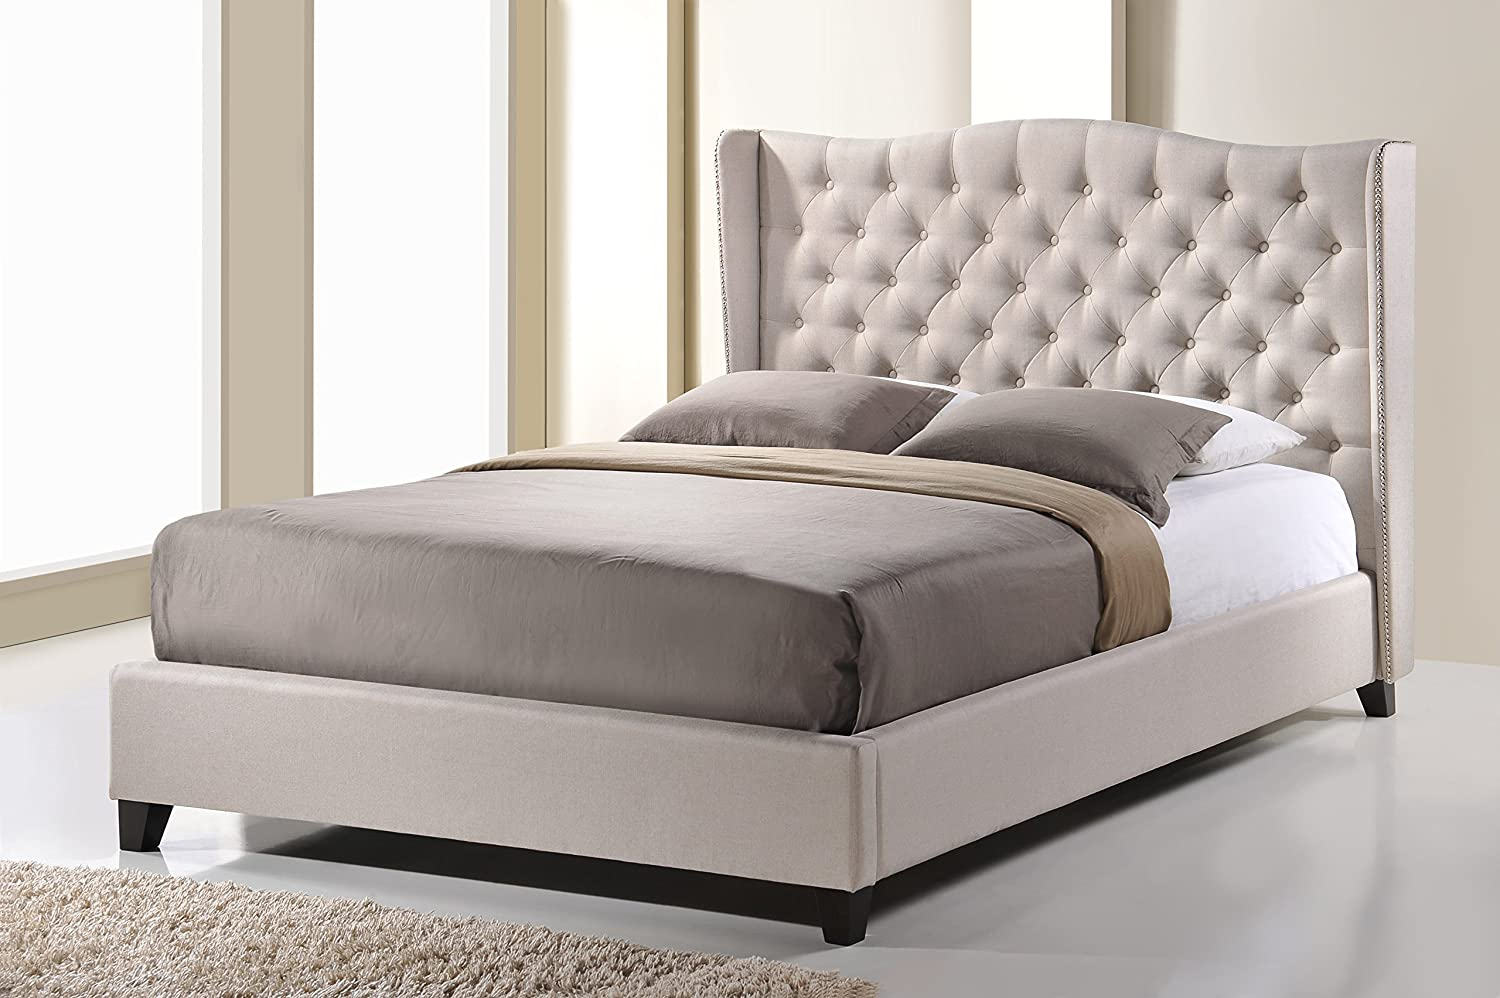 modern platform bed with lights. Amazon.com: Baxton Studio Norwich Linen Modern Platform Bed, King, Light Beige: Kitchen \u0026 Dining Bed With Lights R